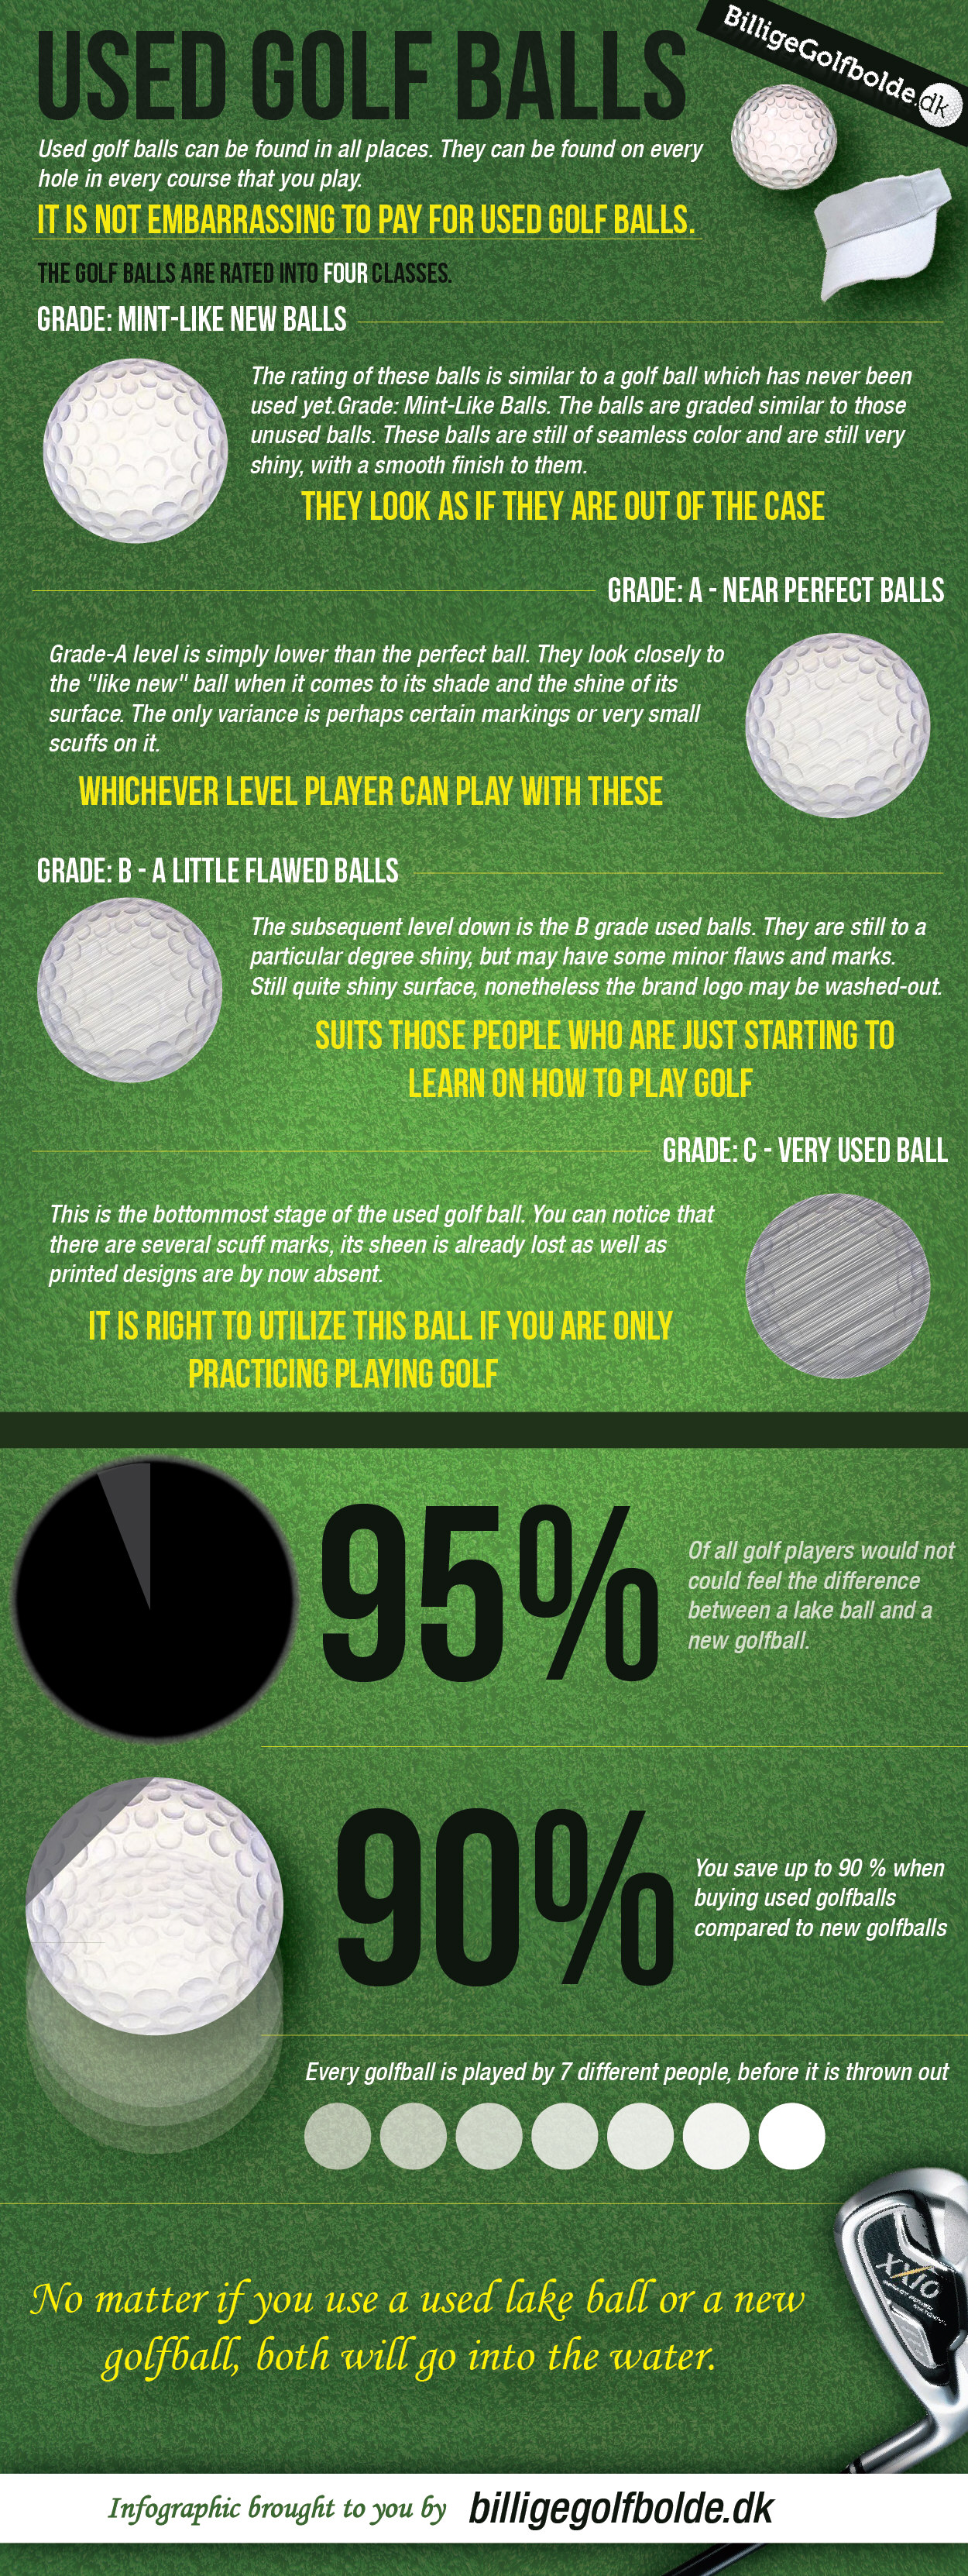 Lifecycle of a Used Golf Ball